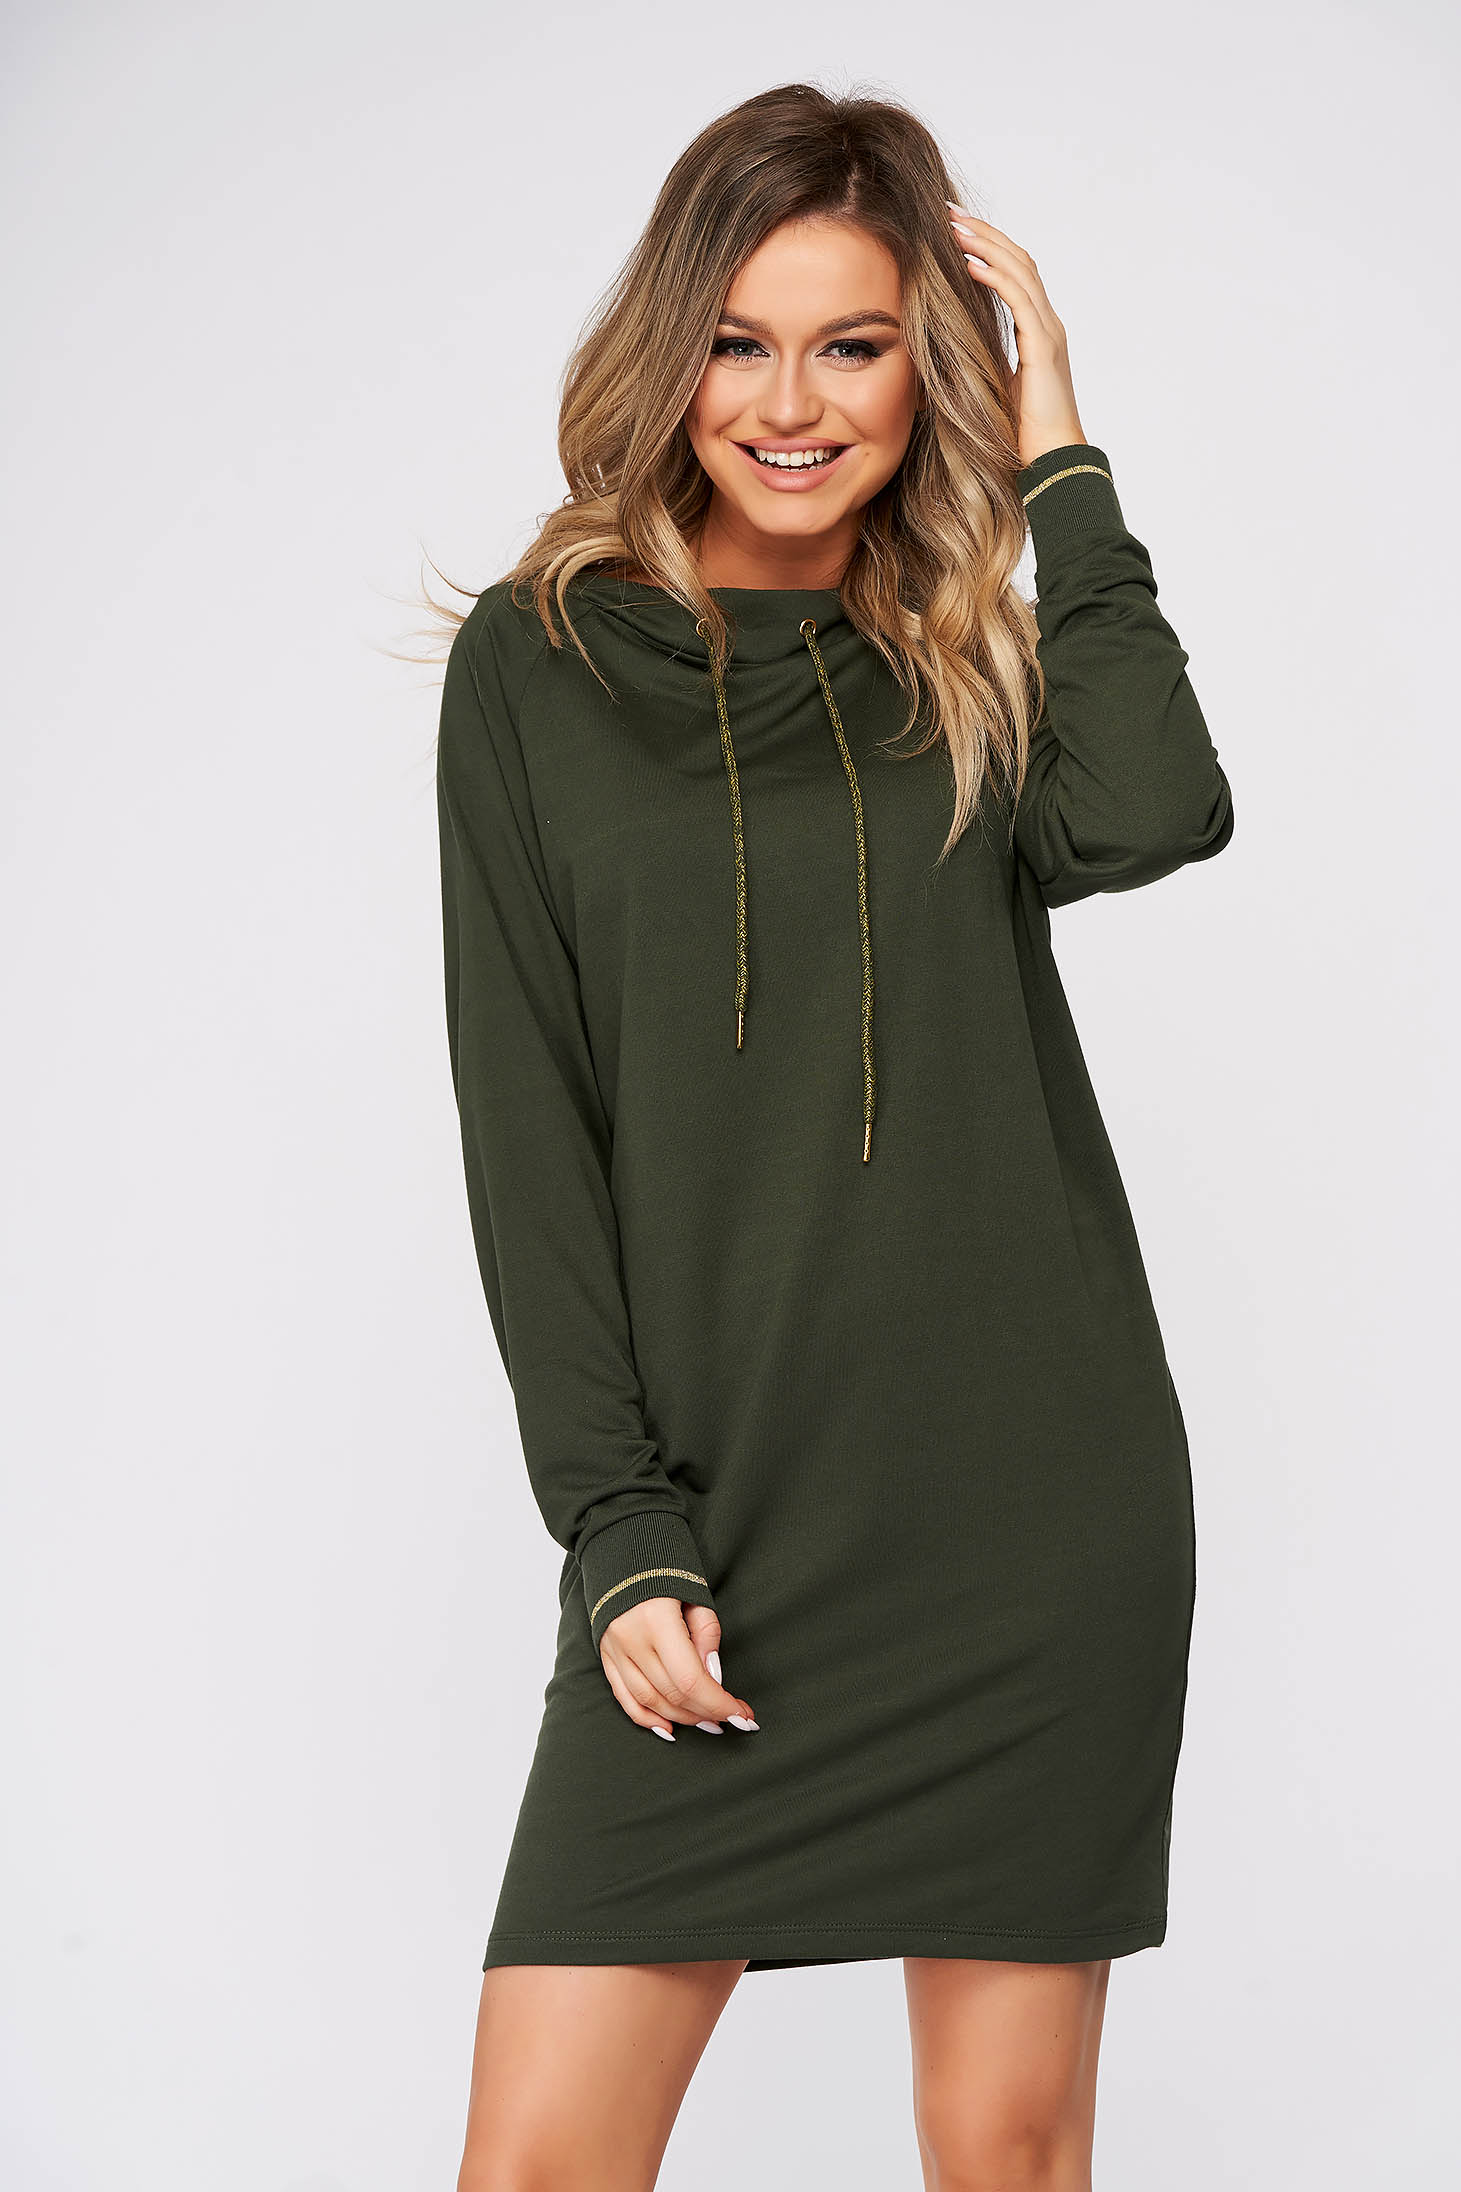 Green dress casual short cut flared with laced details